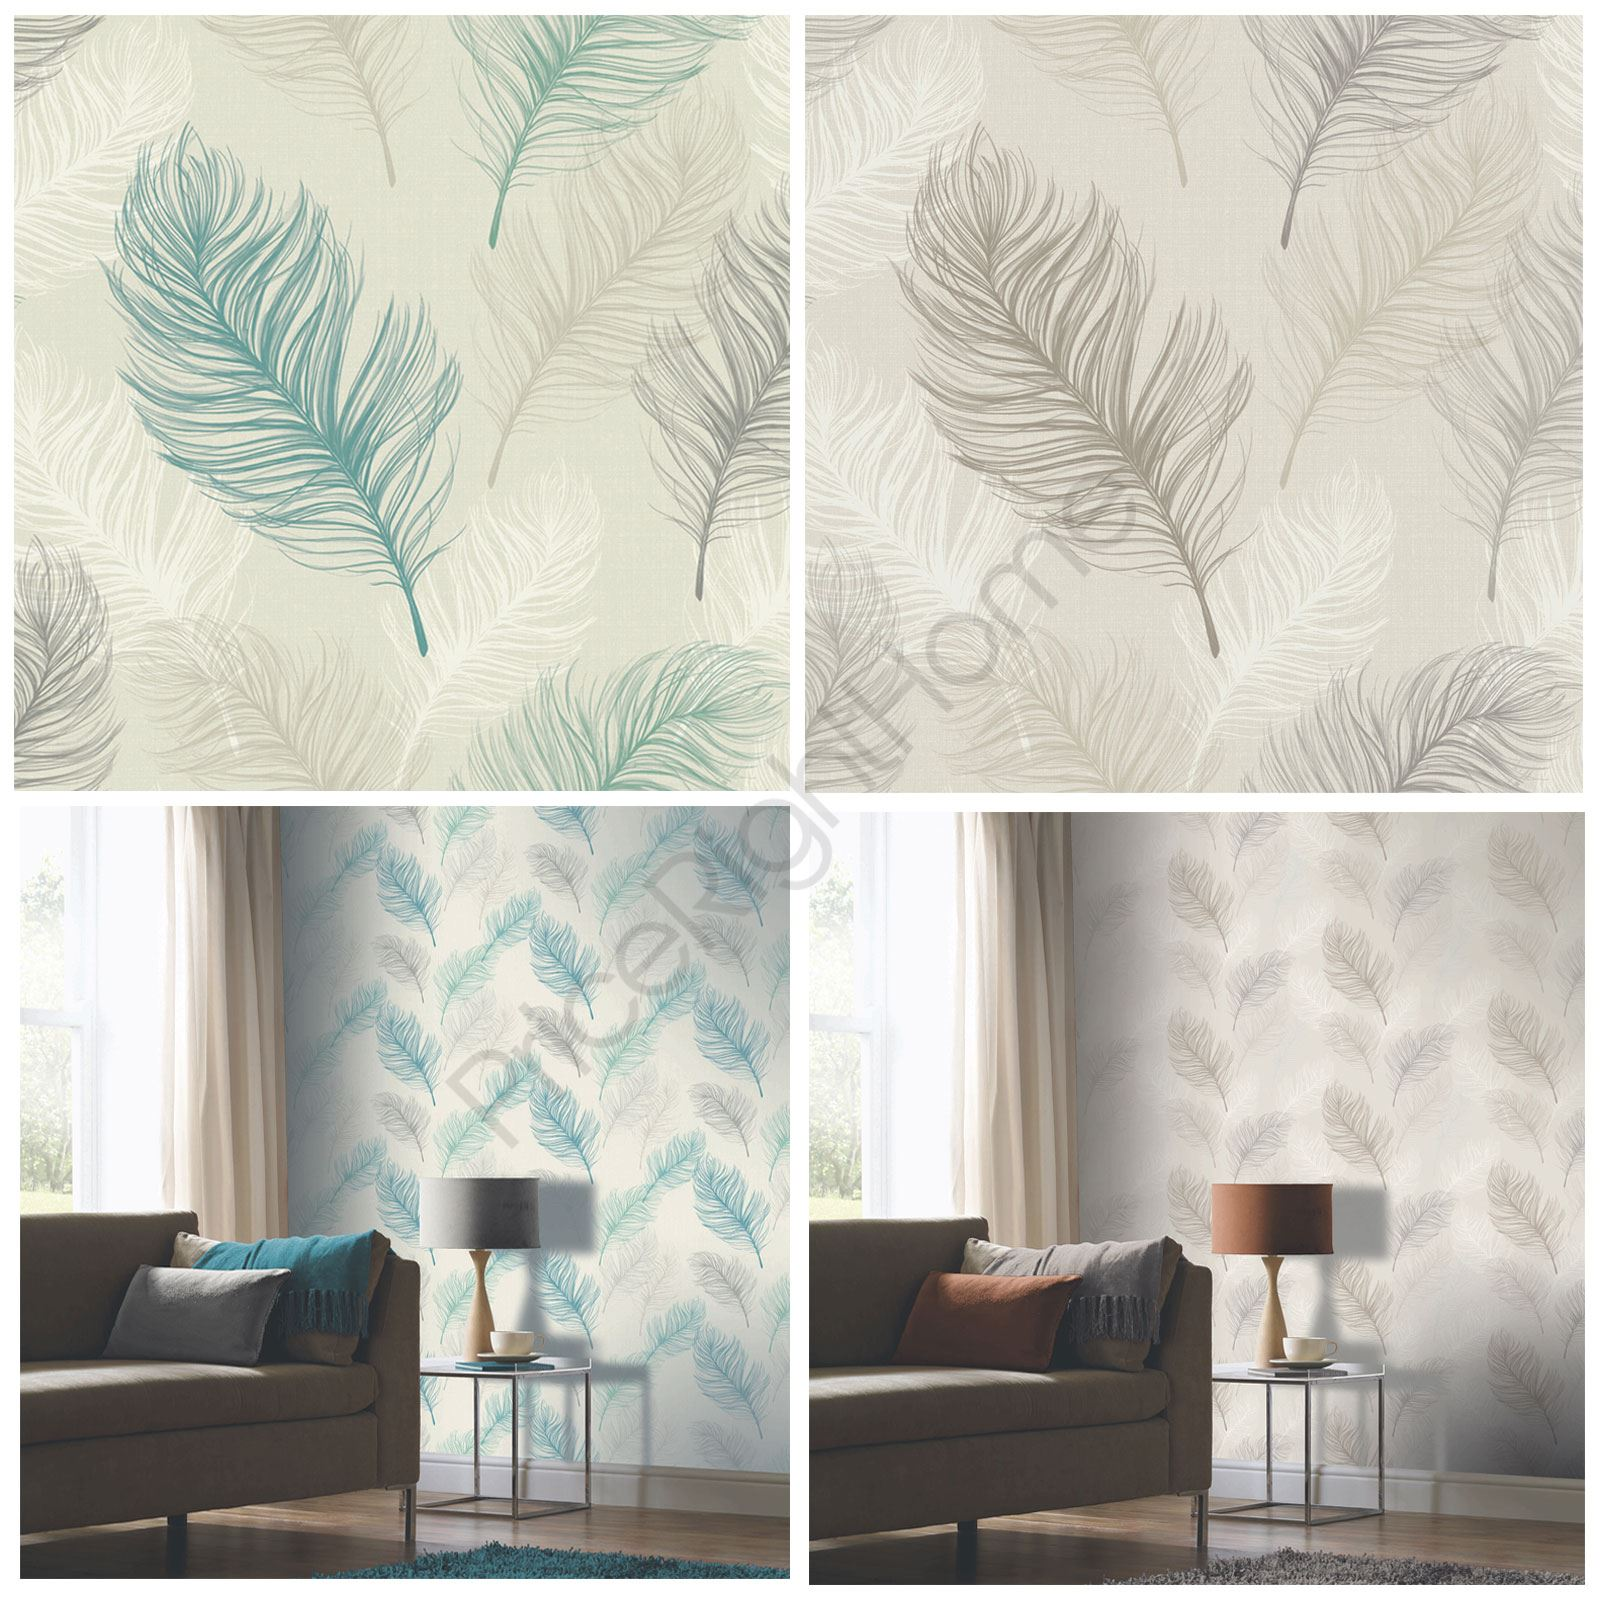 Whisper feather wallpaper arthouse taupe teal for Feature wall wallpaper